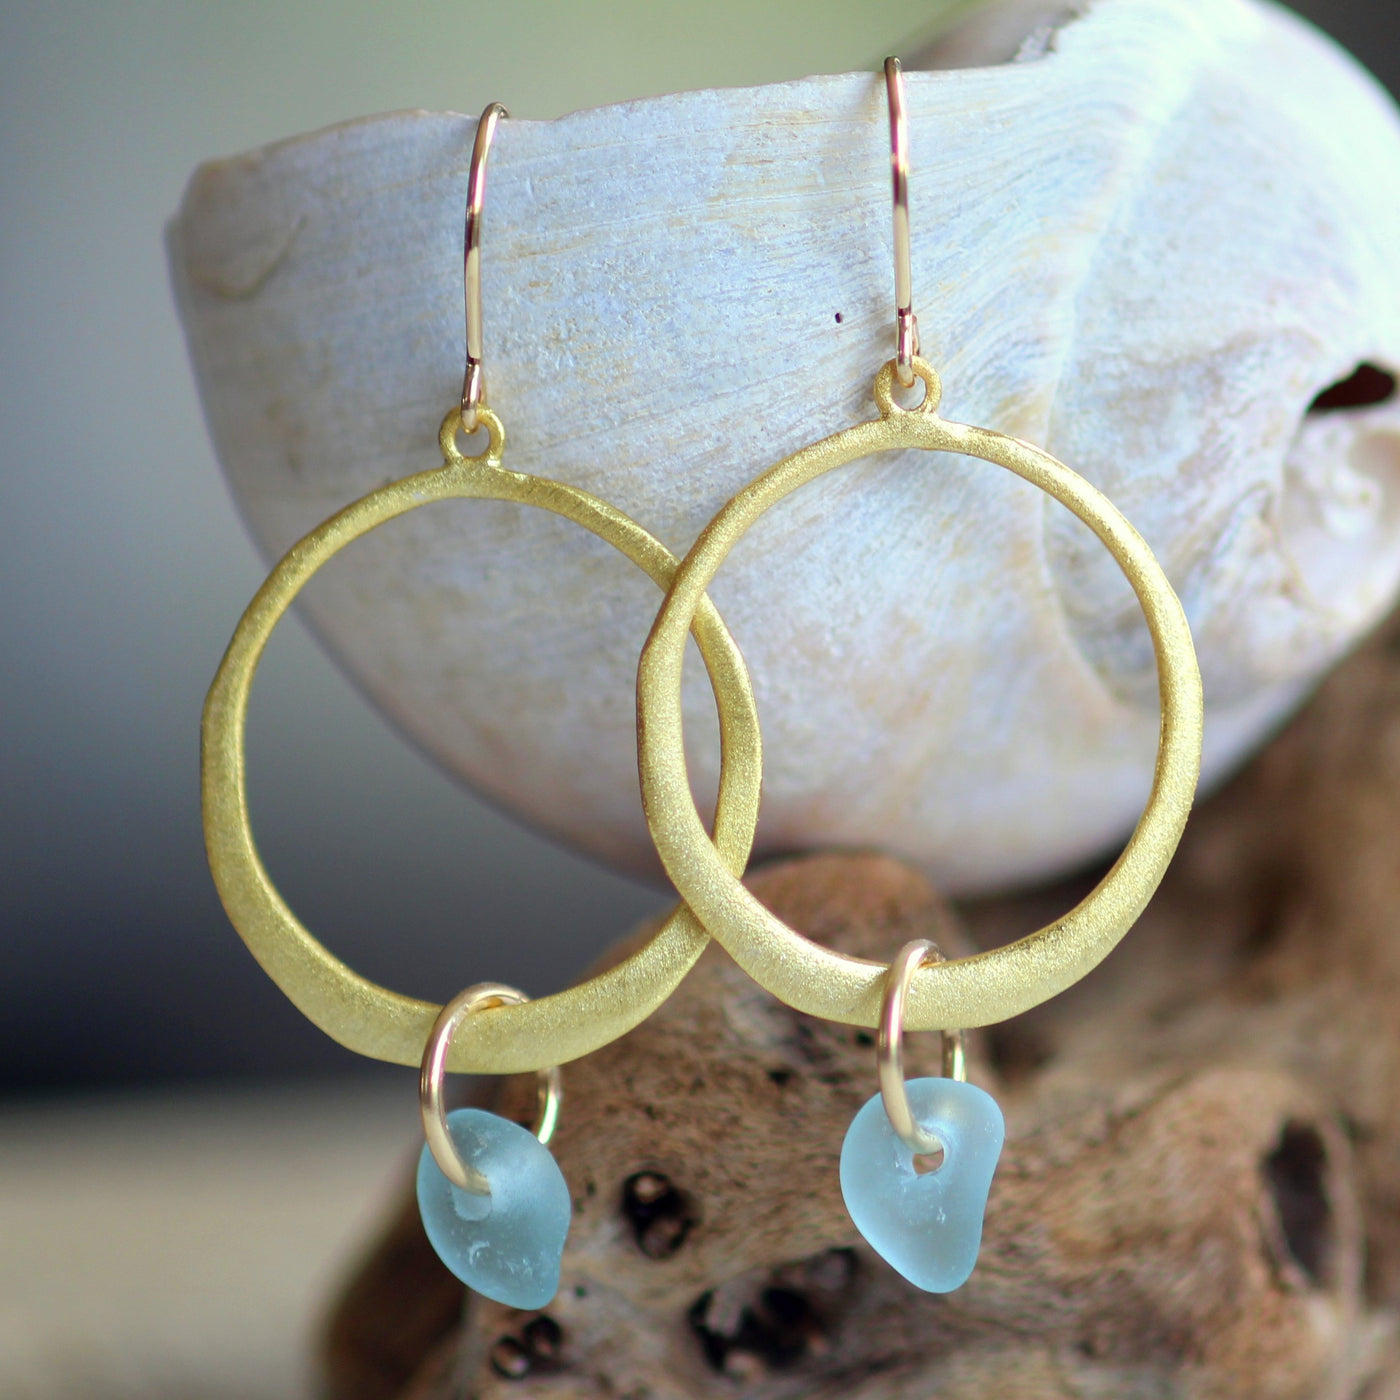 Verge gold sea glass earrings crafted with genuine aqua sea glass